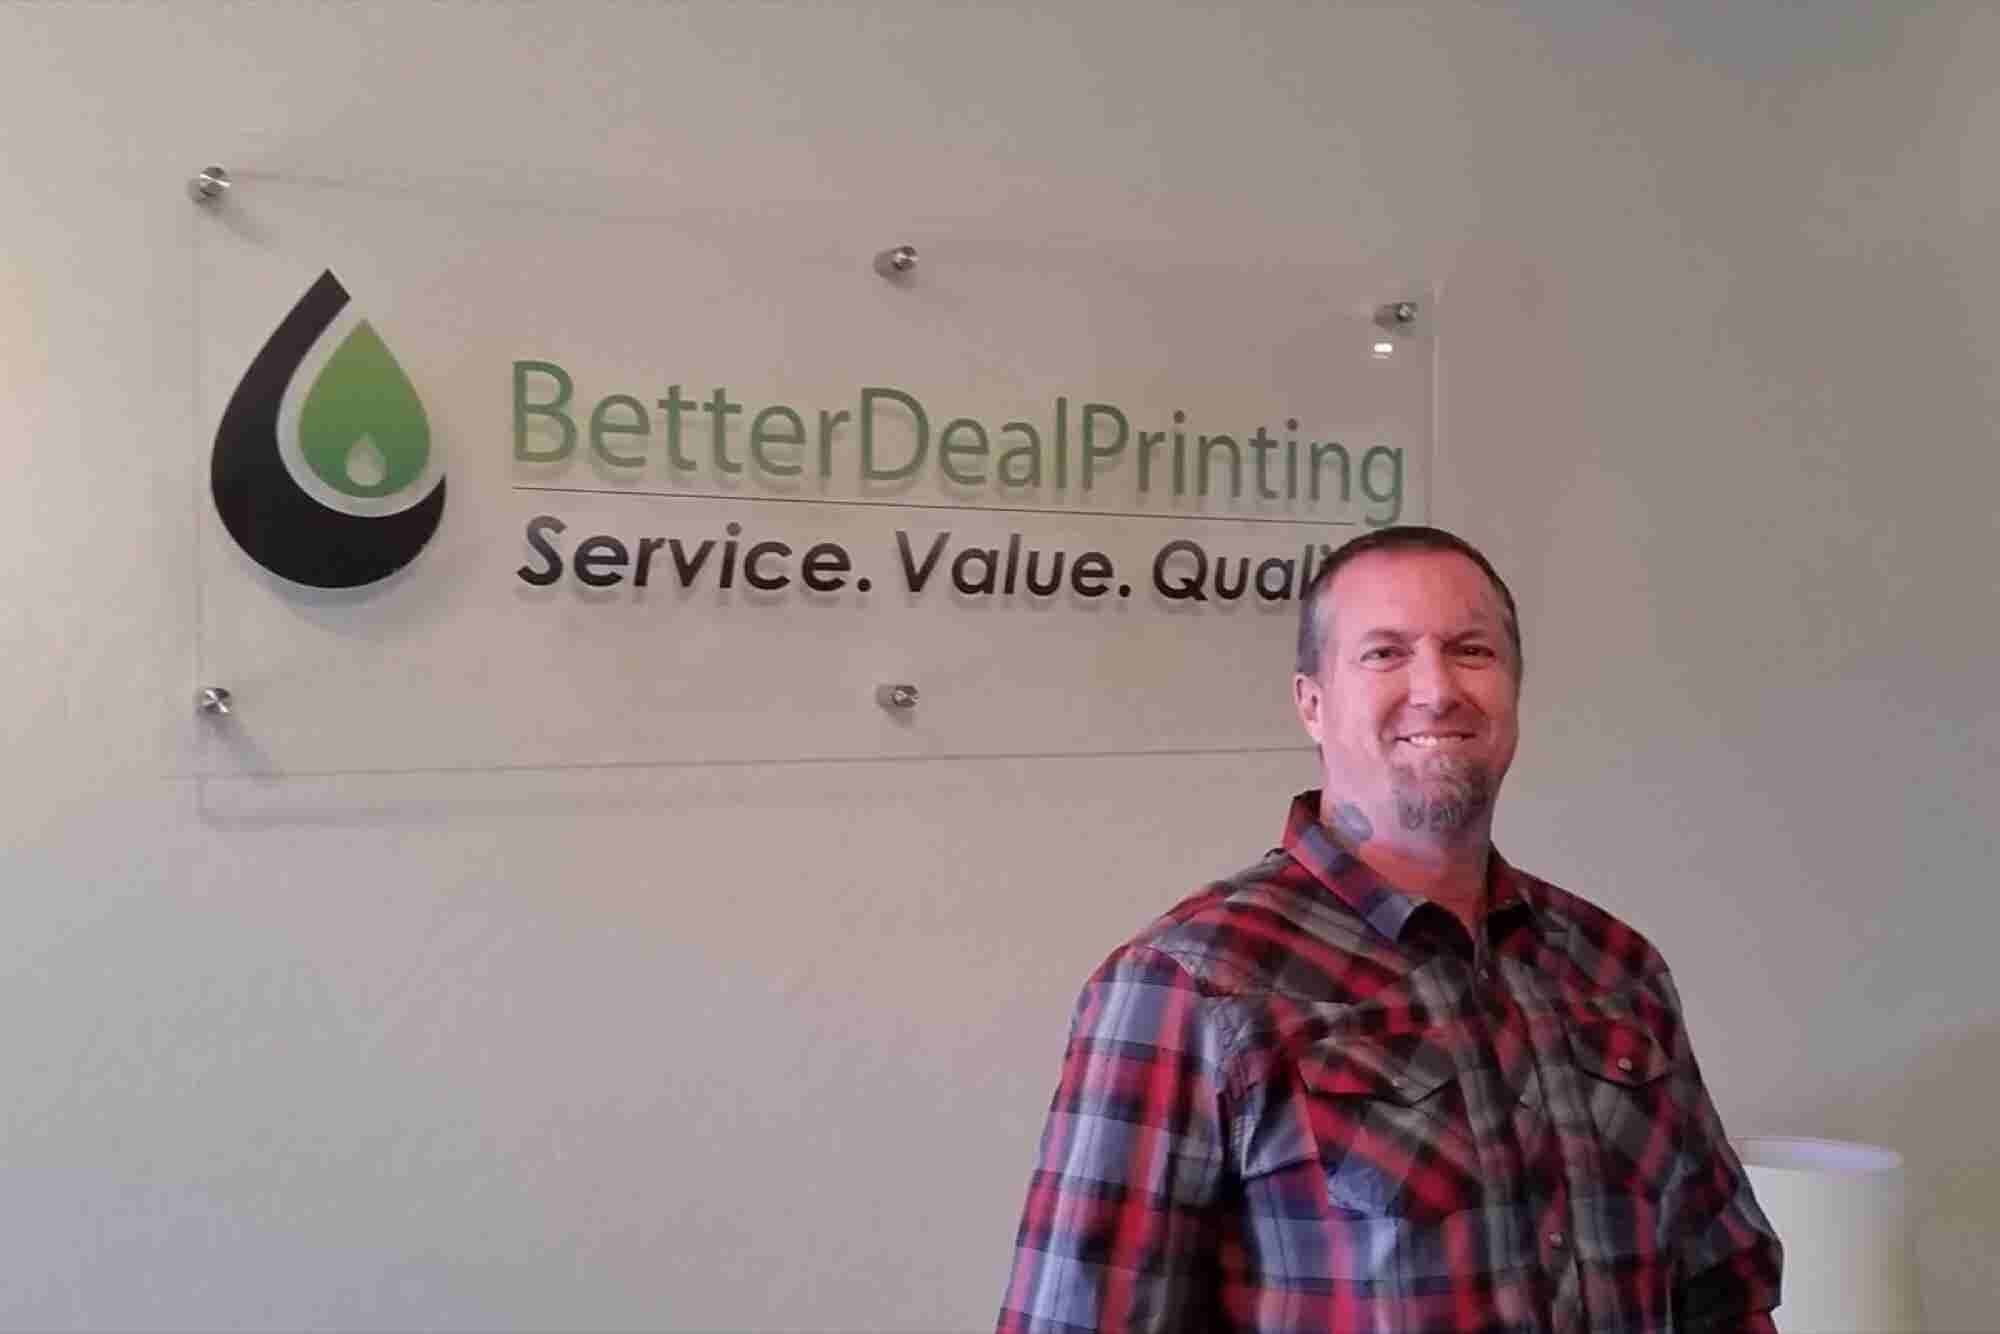 How the Printing Biz Was a Better Deal for This U.S. Military Veteran